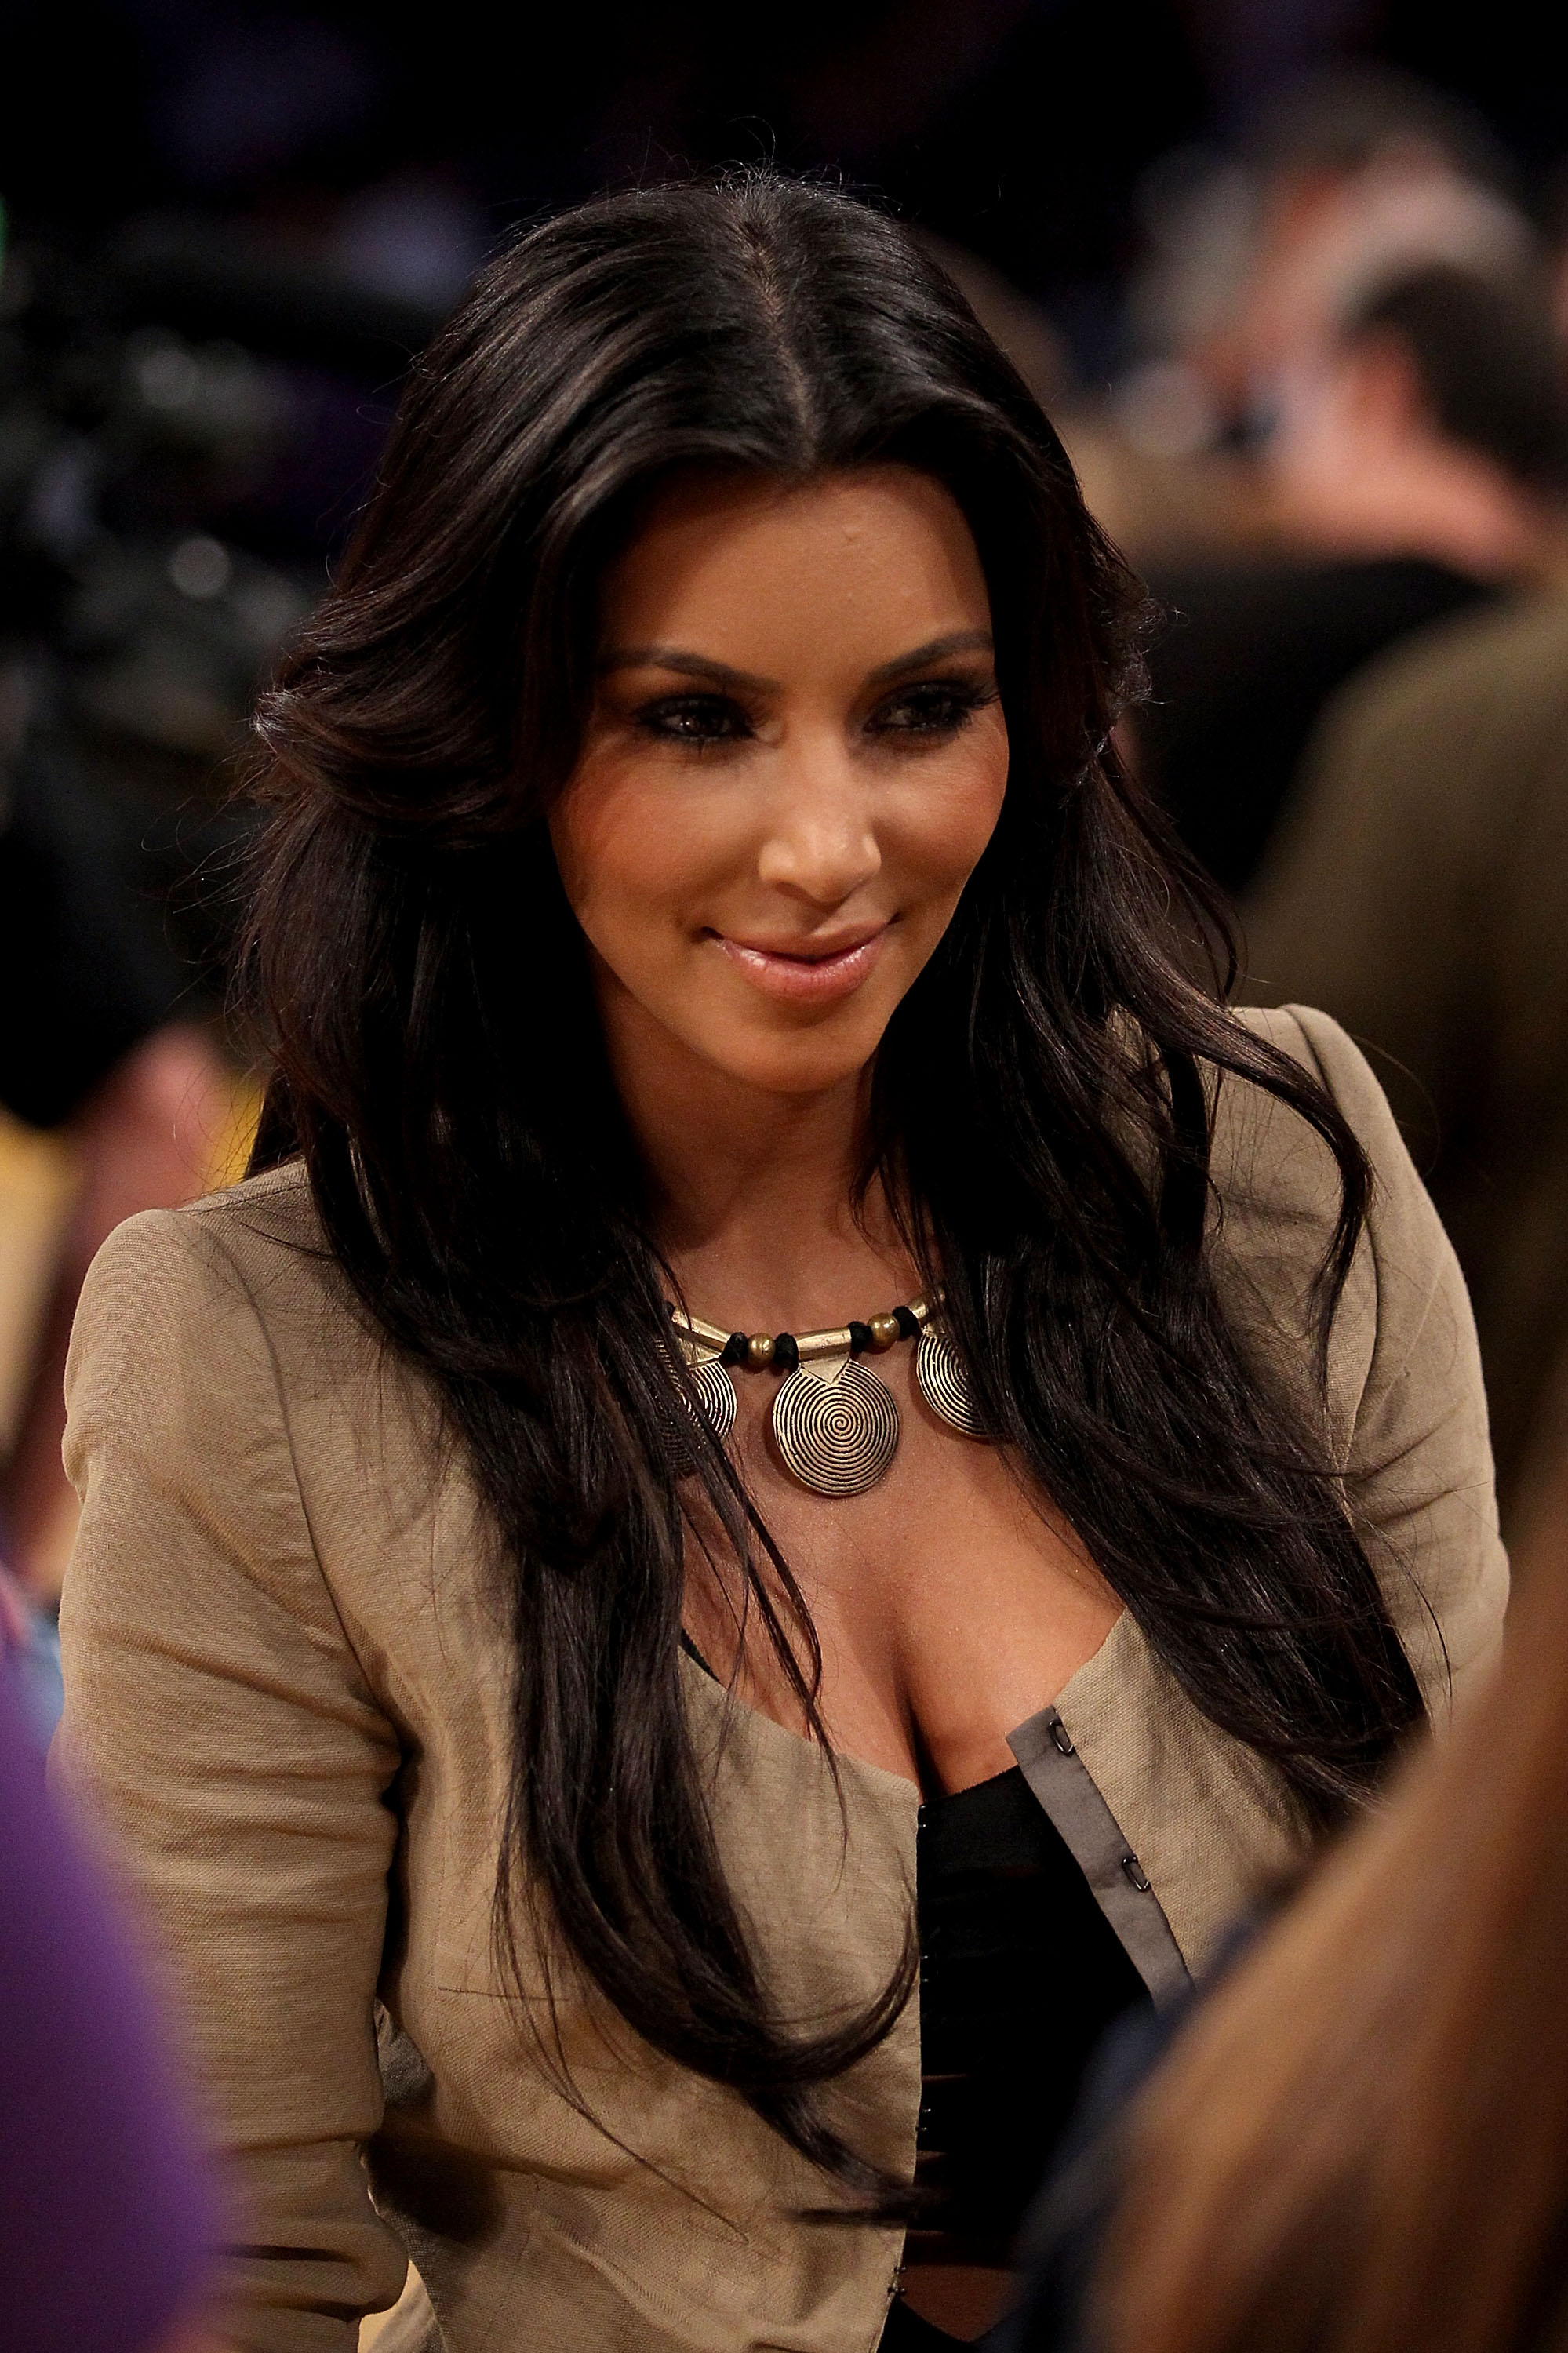 LOS ANGELES, CA - JUNE 17:  Kim Kardashian on the court during halftime of Game Seven of the 2010 NBA Finals at Staples Center between the Boston Celtics and the Los Angeles Lakers on June 17, 2010 in Los Angeles, California.  NOTE TO USER: User expressly